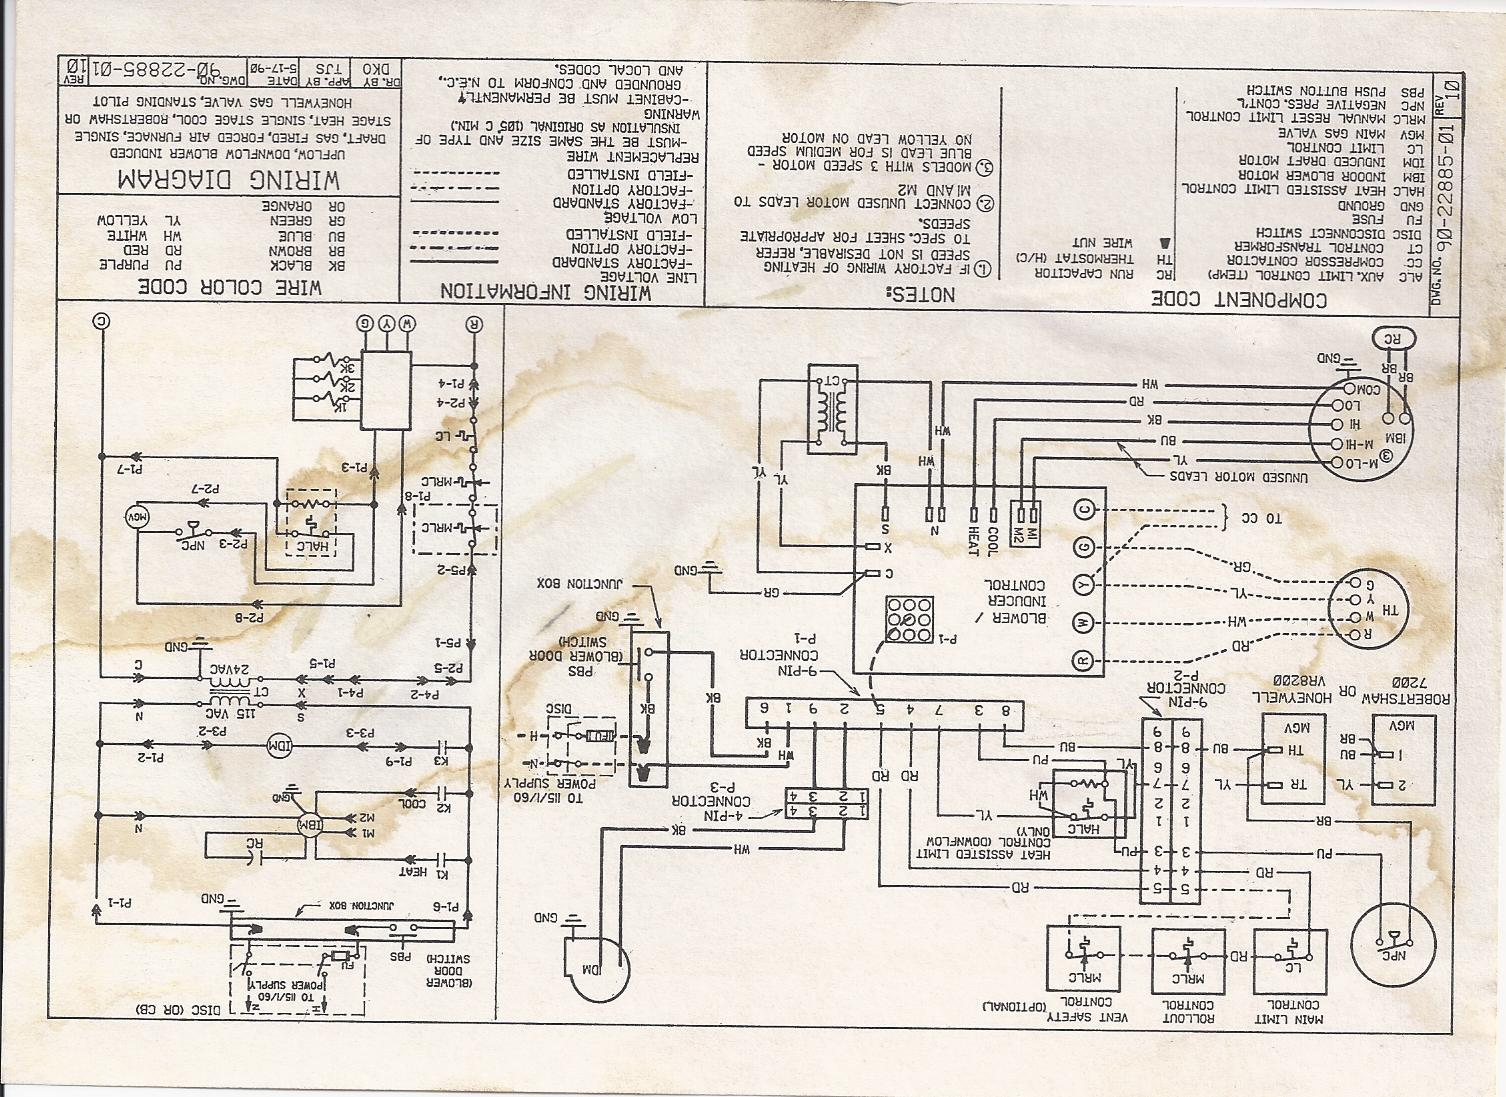 my ruud indoor blower runs all the time  i have been told i Air Conditioner Thermostat Wiring Diagram Trane HVAC Wiring Diagrams